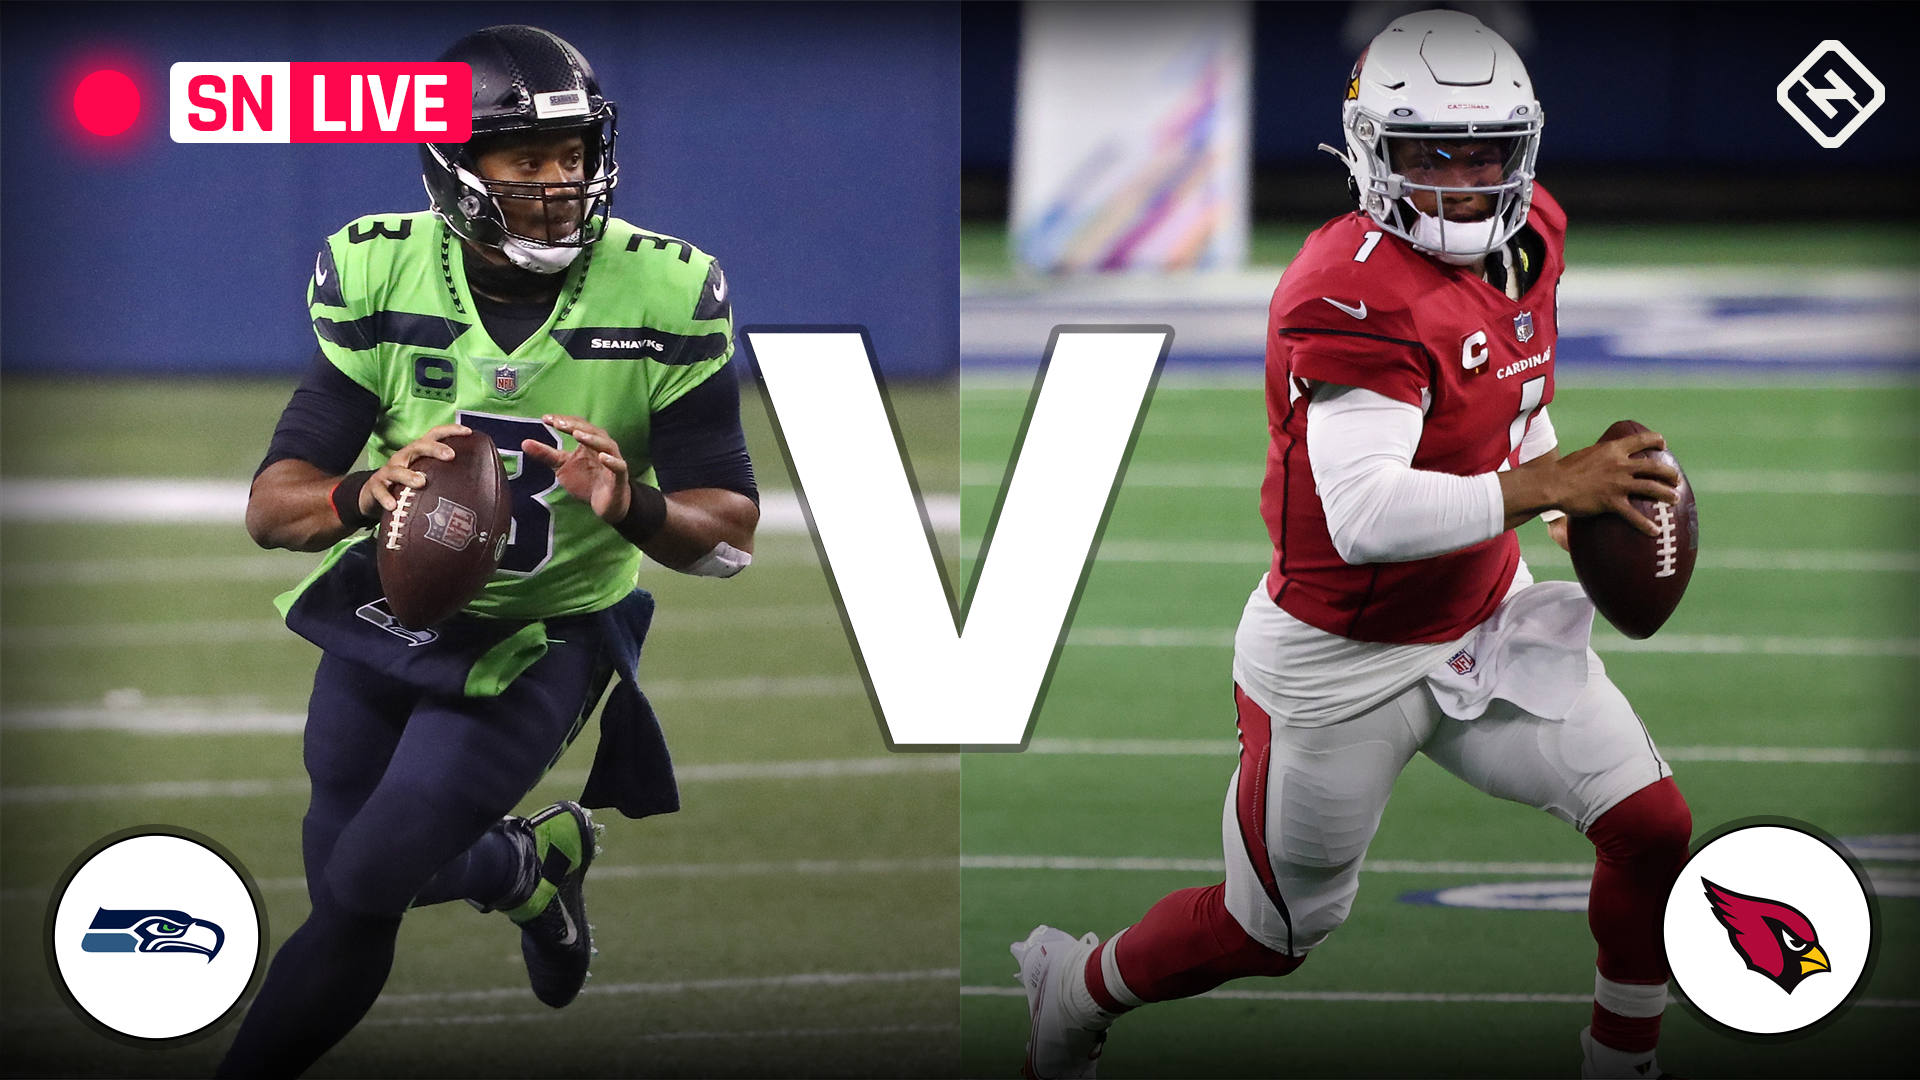 Seahawks Vs Cardinals Live Score Updates Highlights From Sunday Night Football Game Week 7 Thursday Night Football Sunday Night Football Seahawks Vs Cardinals